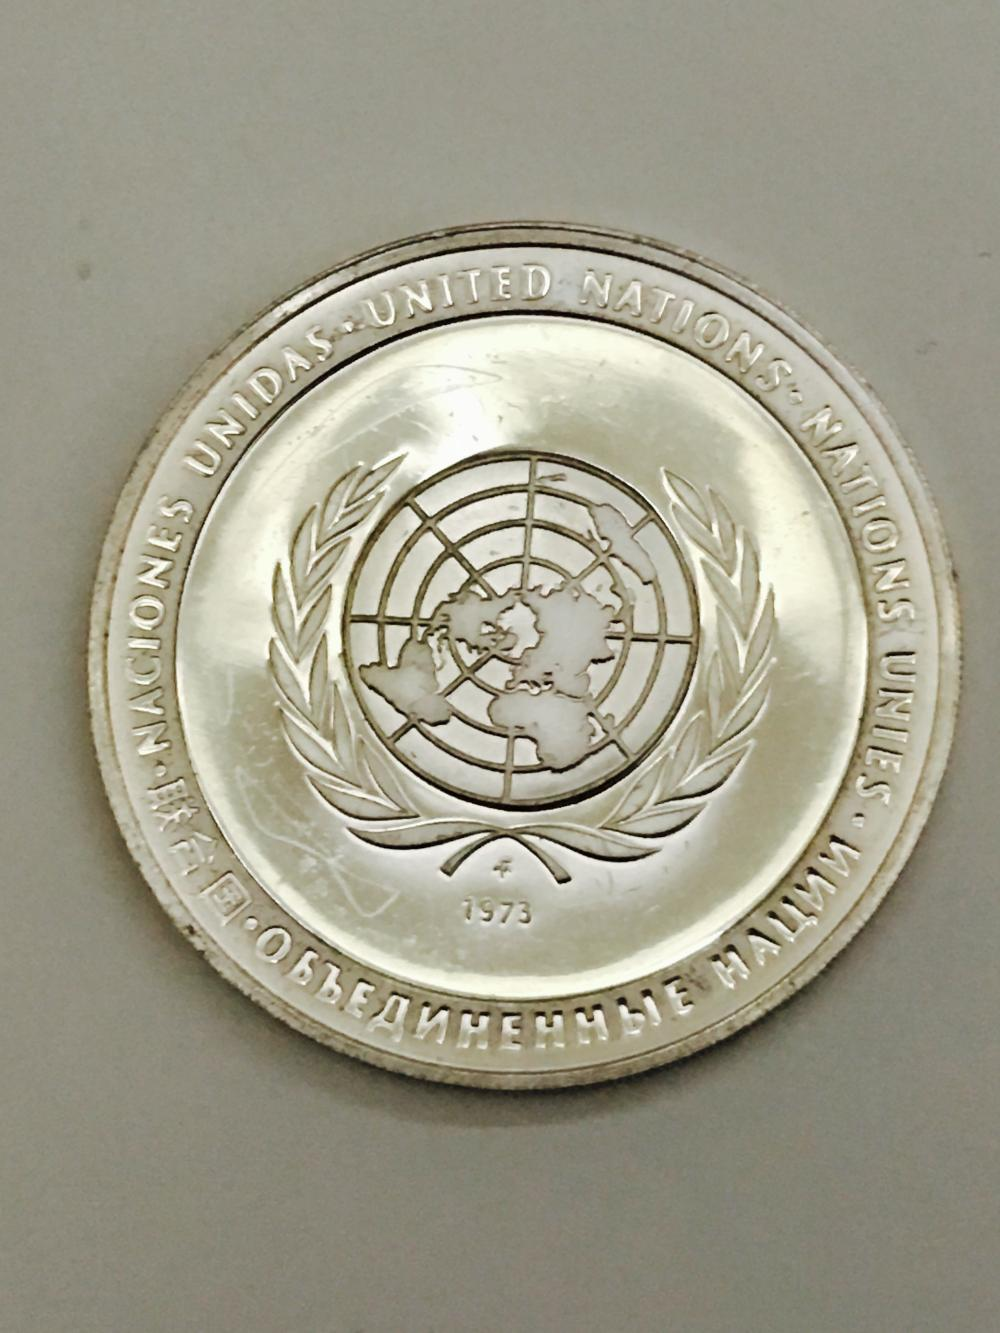 United Nations 1973 Sterling Silver Coin Collectible